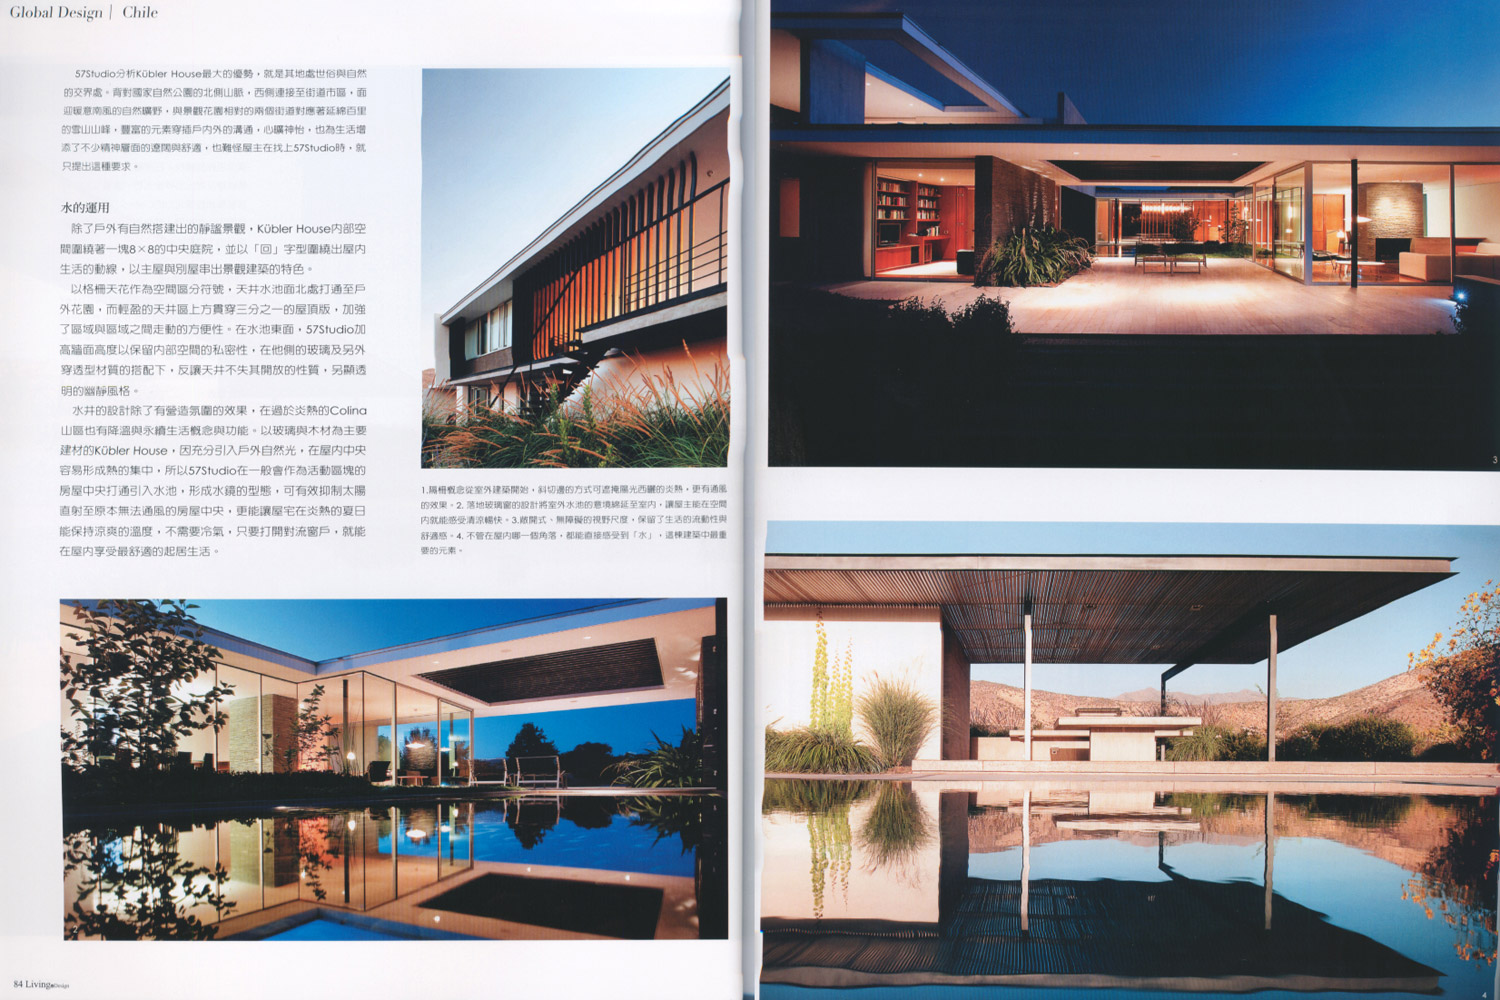 Photo: Living & Design / #22 / Taiwán / 2010